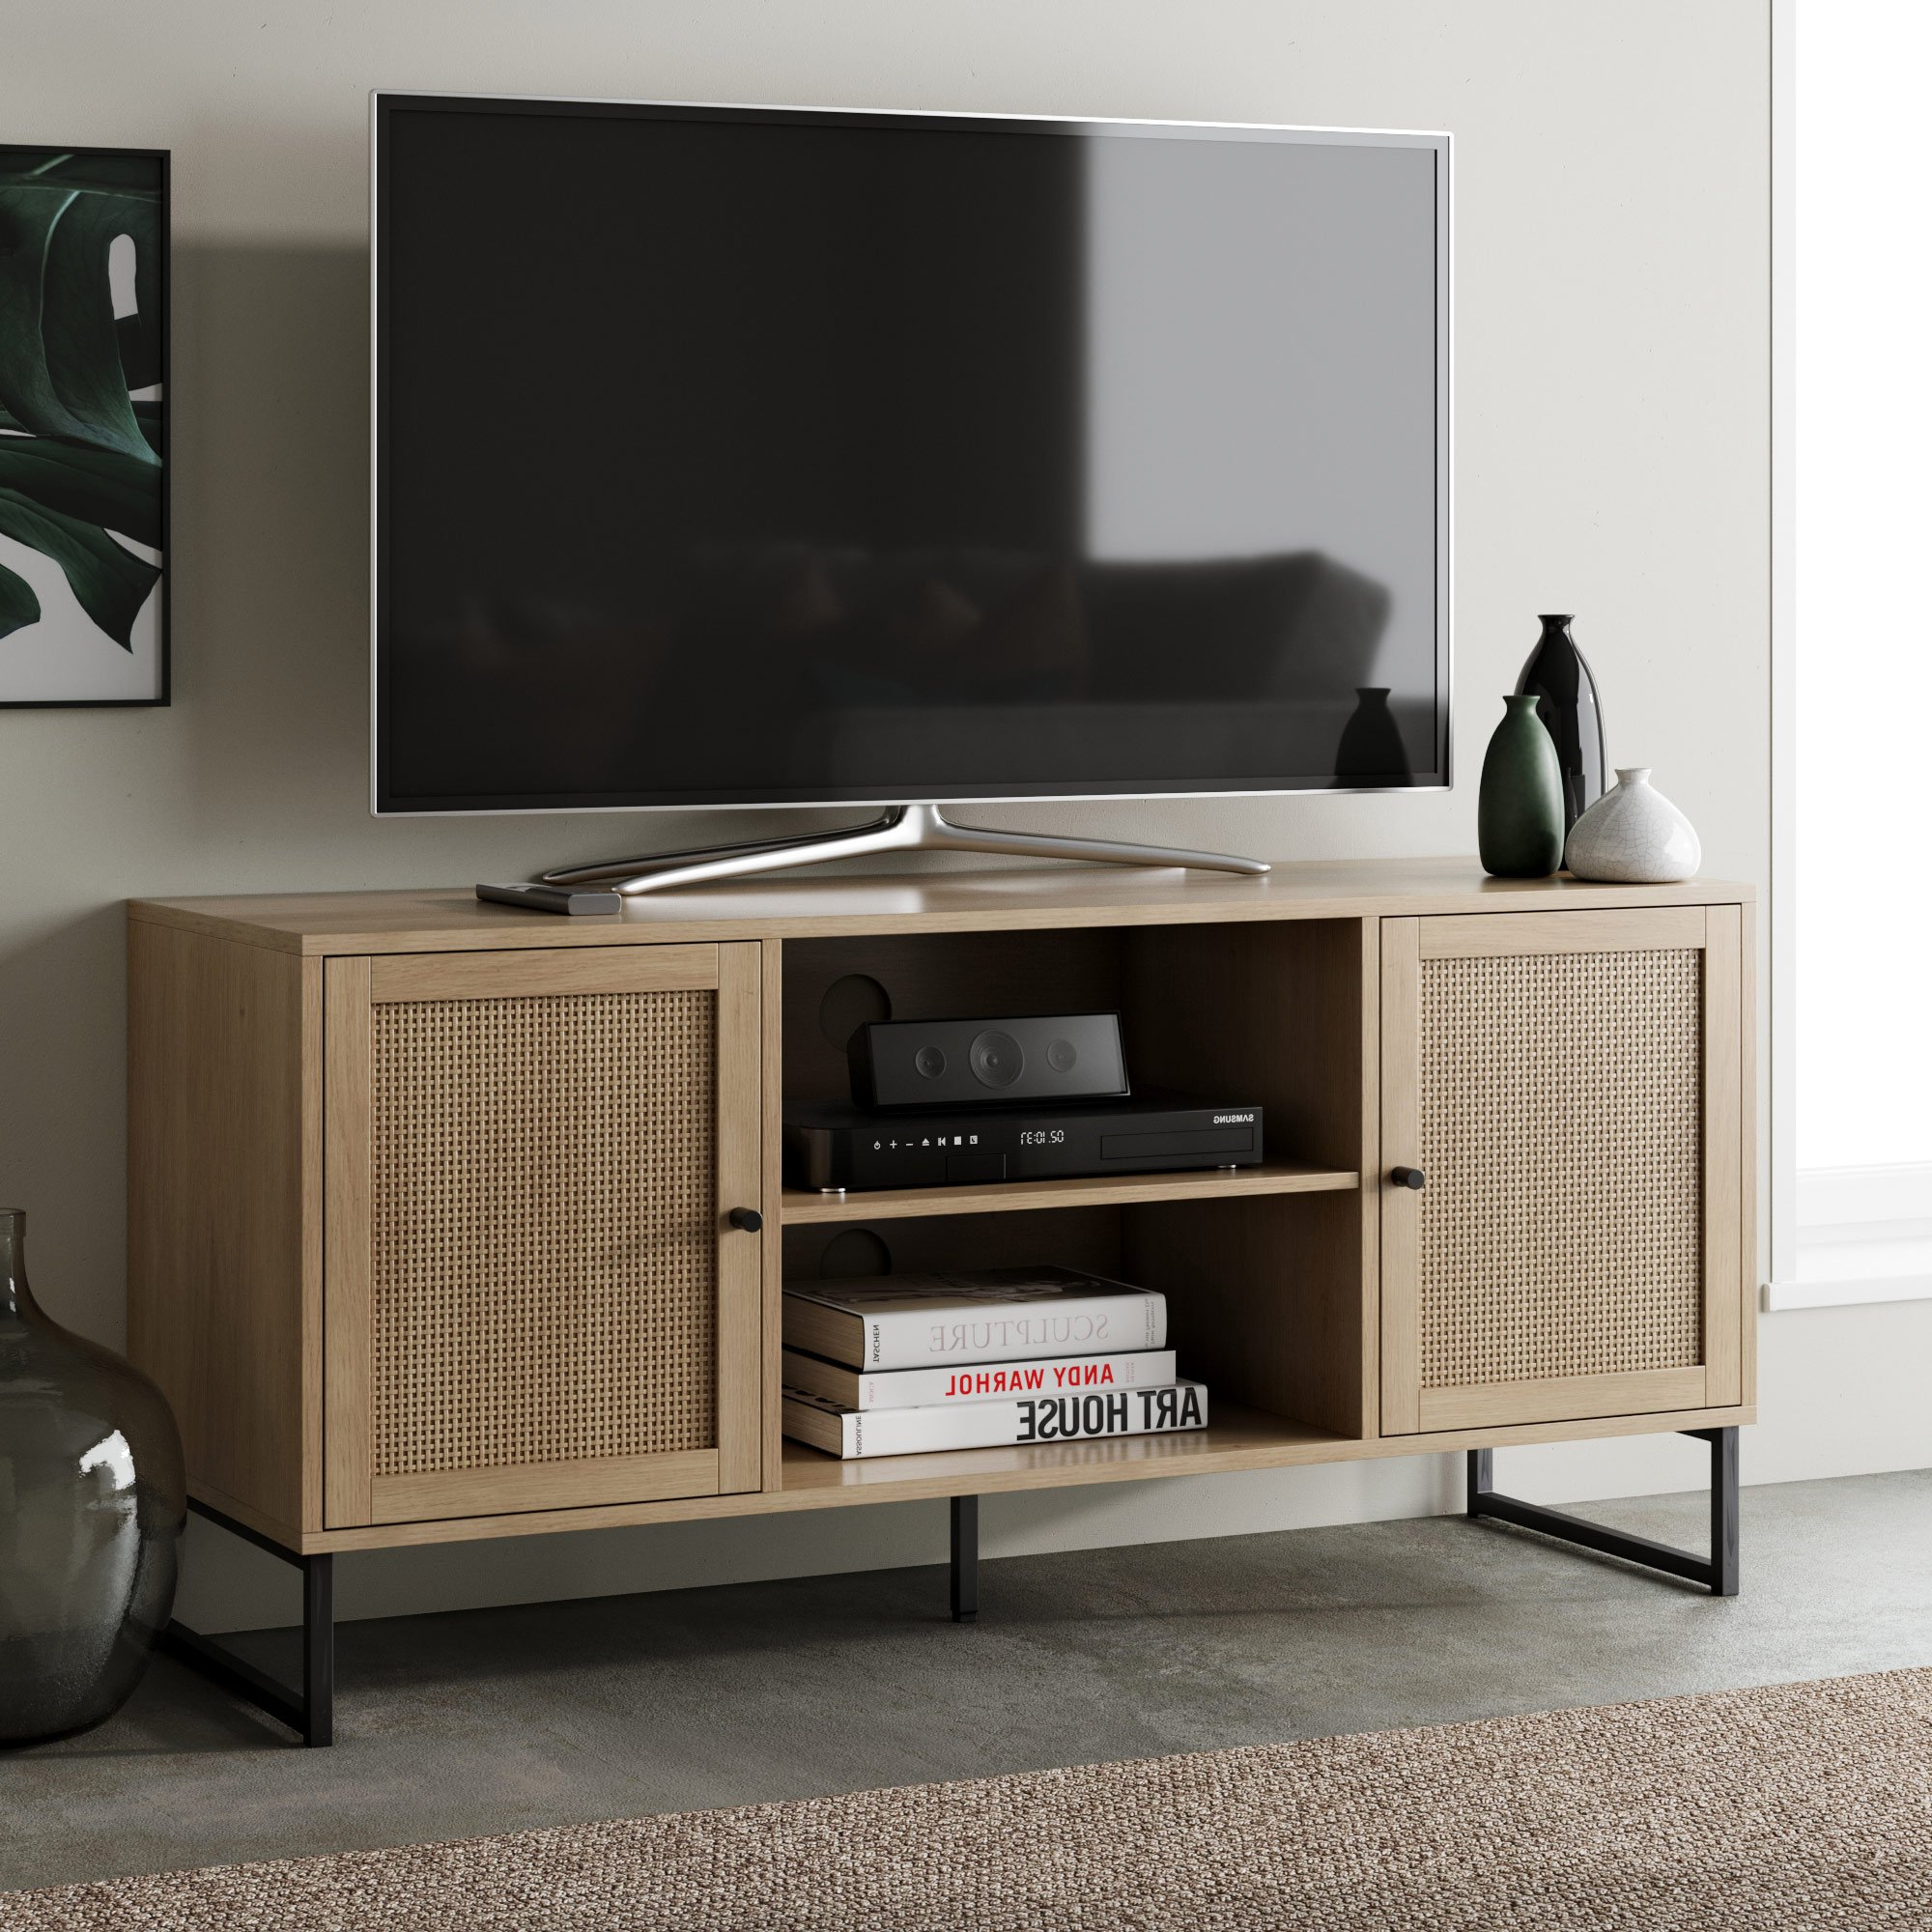 Nathan James Mina Modern Tv Stand Entertainment Cabinet Intended For Modern Black Floor Glass Tv Stands With Mount (View 9 of 20)